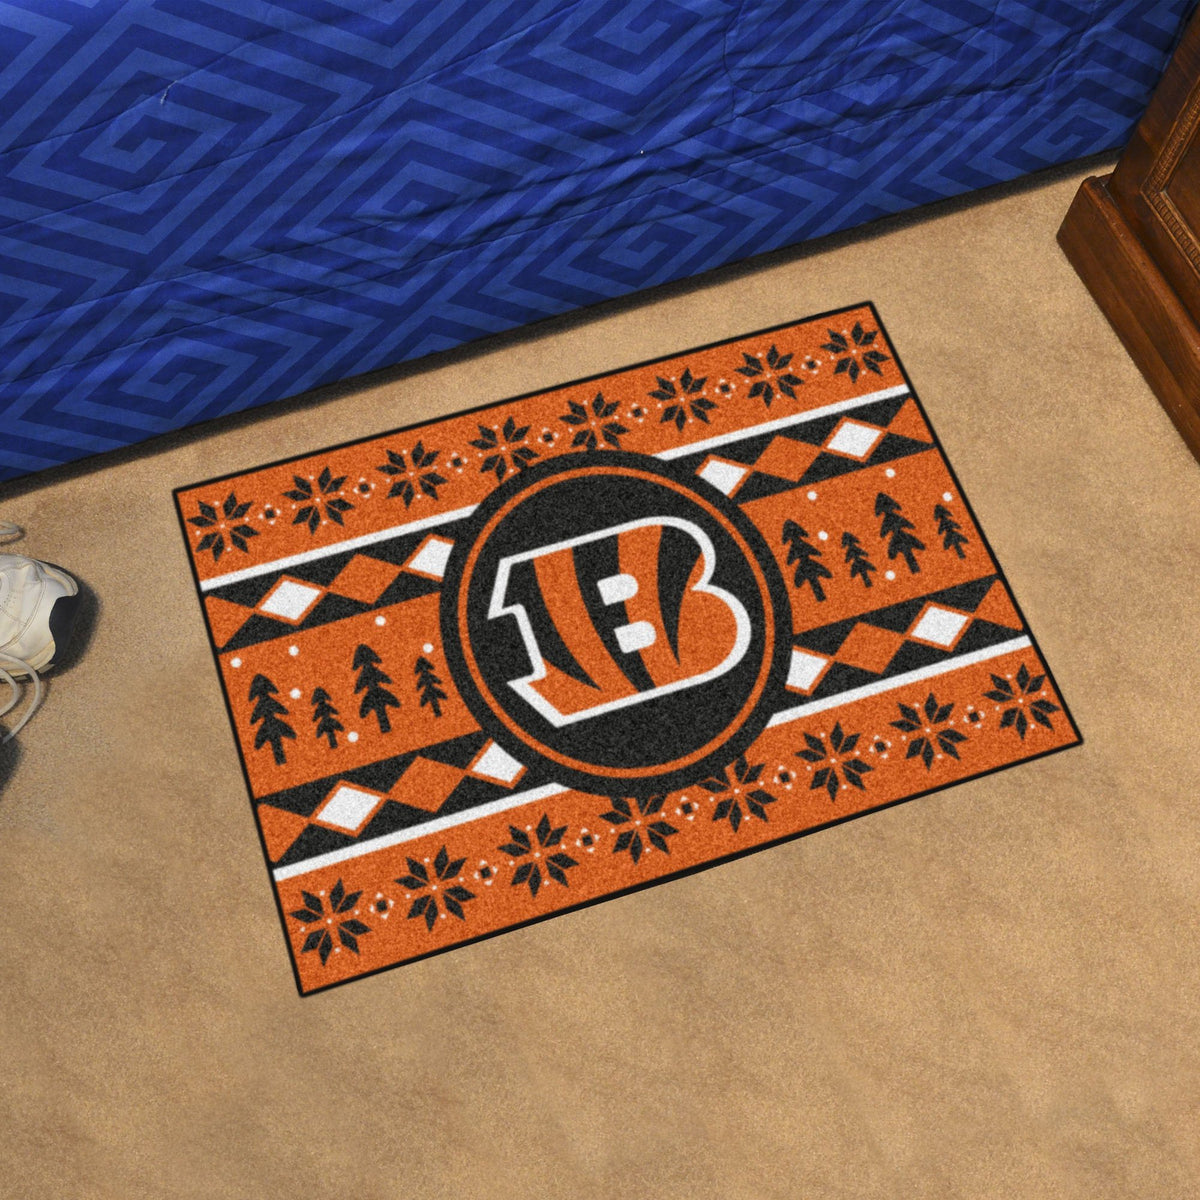 "NFL - Holiday Sweater Starter Mat, 19"" x 30"" NFL Mats, Rectangular Mats, Holiday Sweater Starter Mat, NFL, Home Fan Mats Cincinnati Bengals"